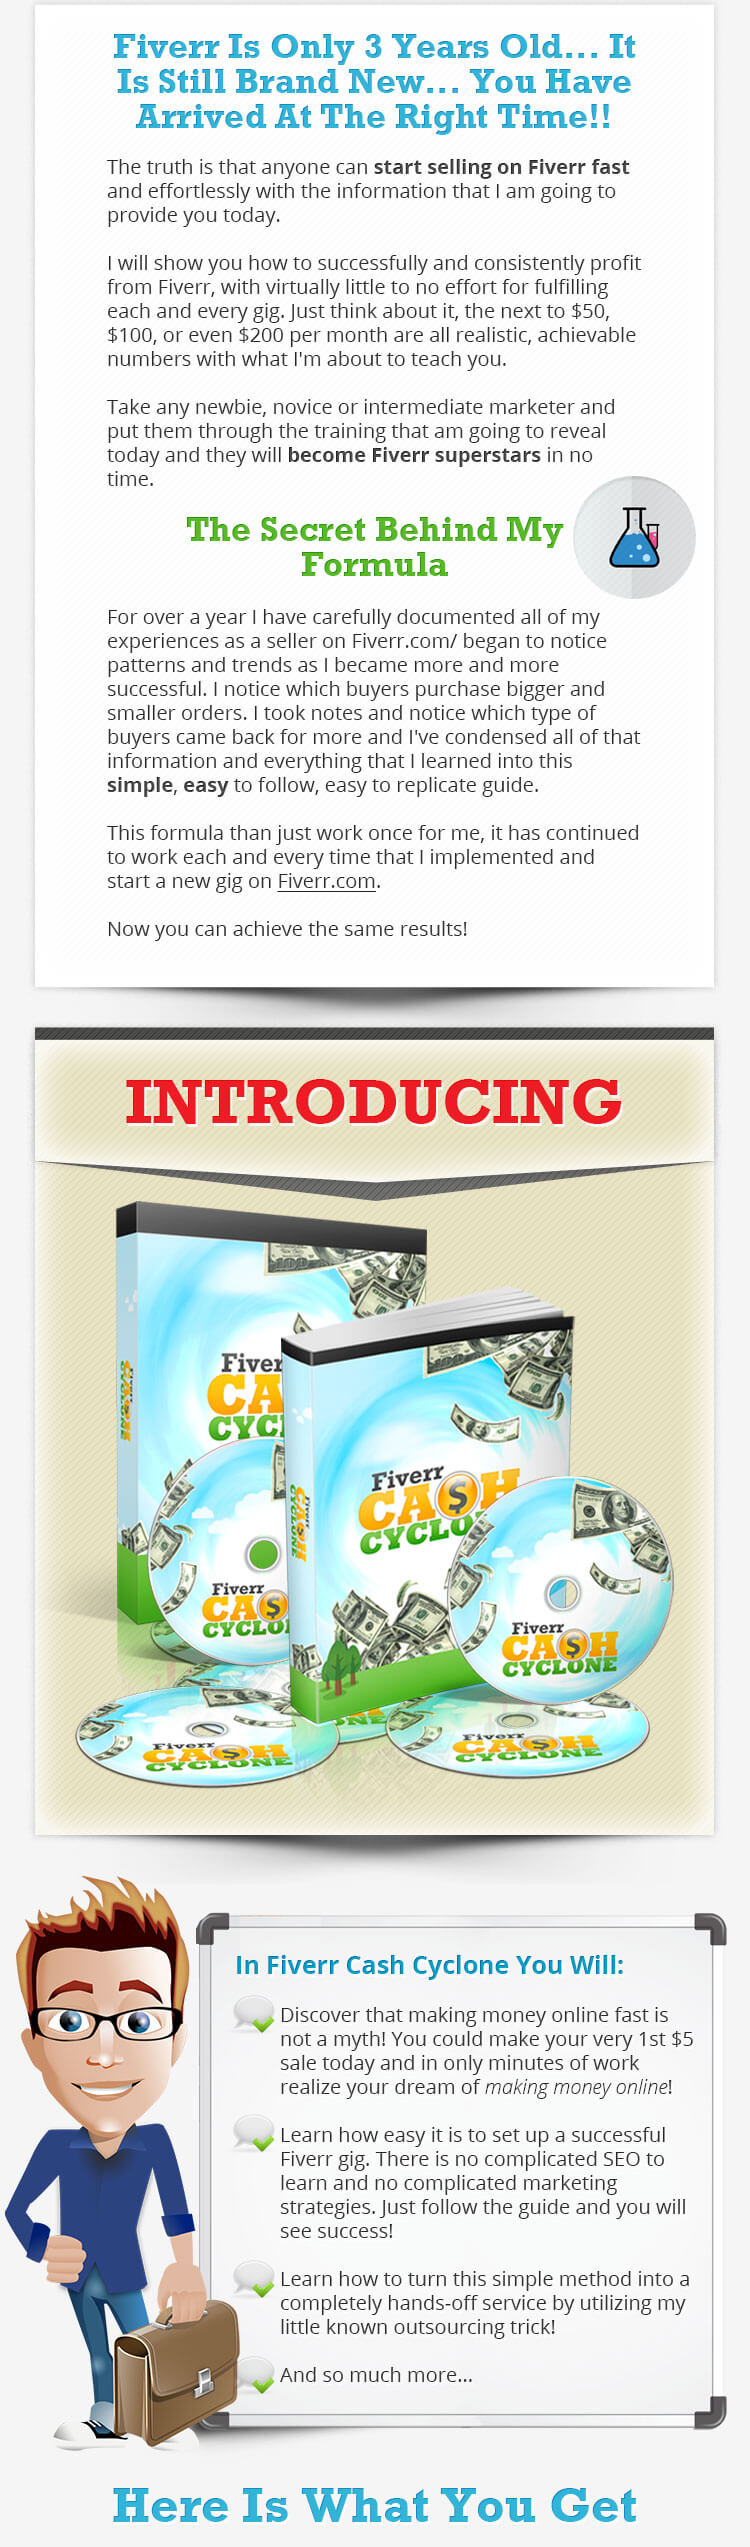 Fiverr Cash CycloneWSO_02